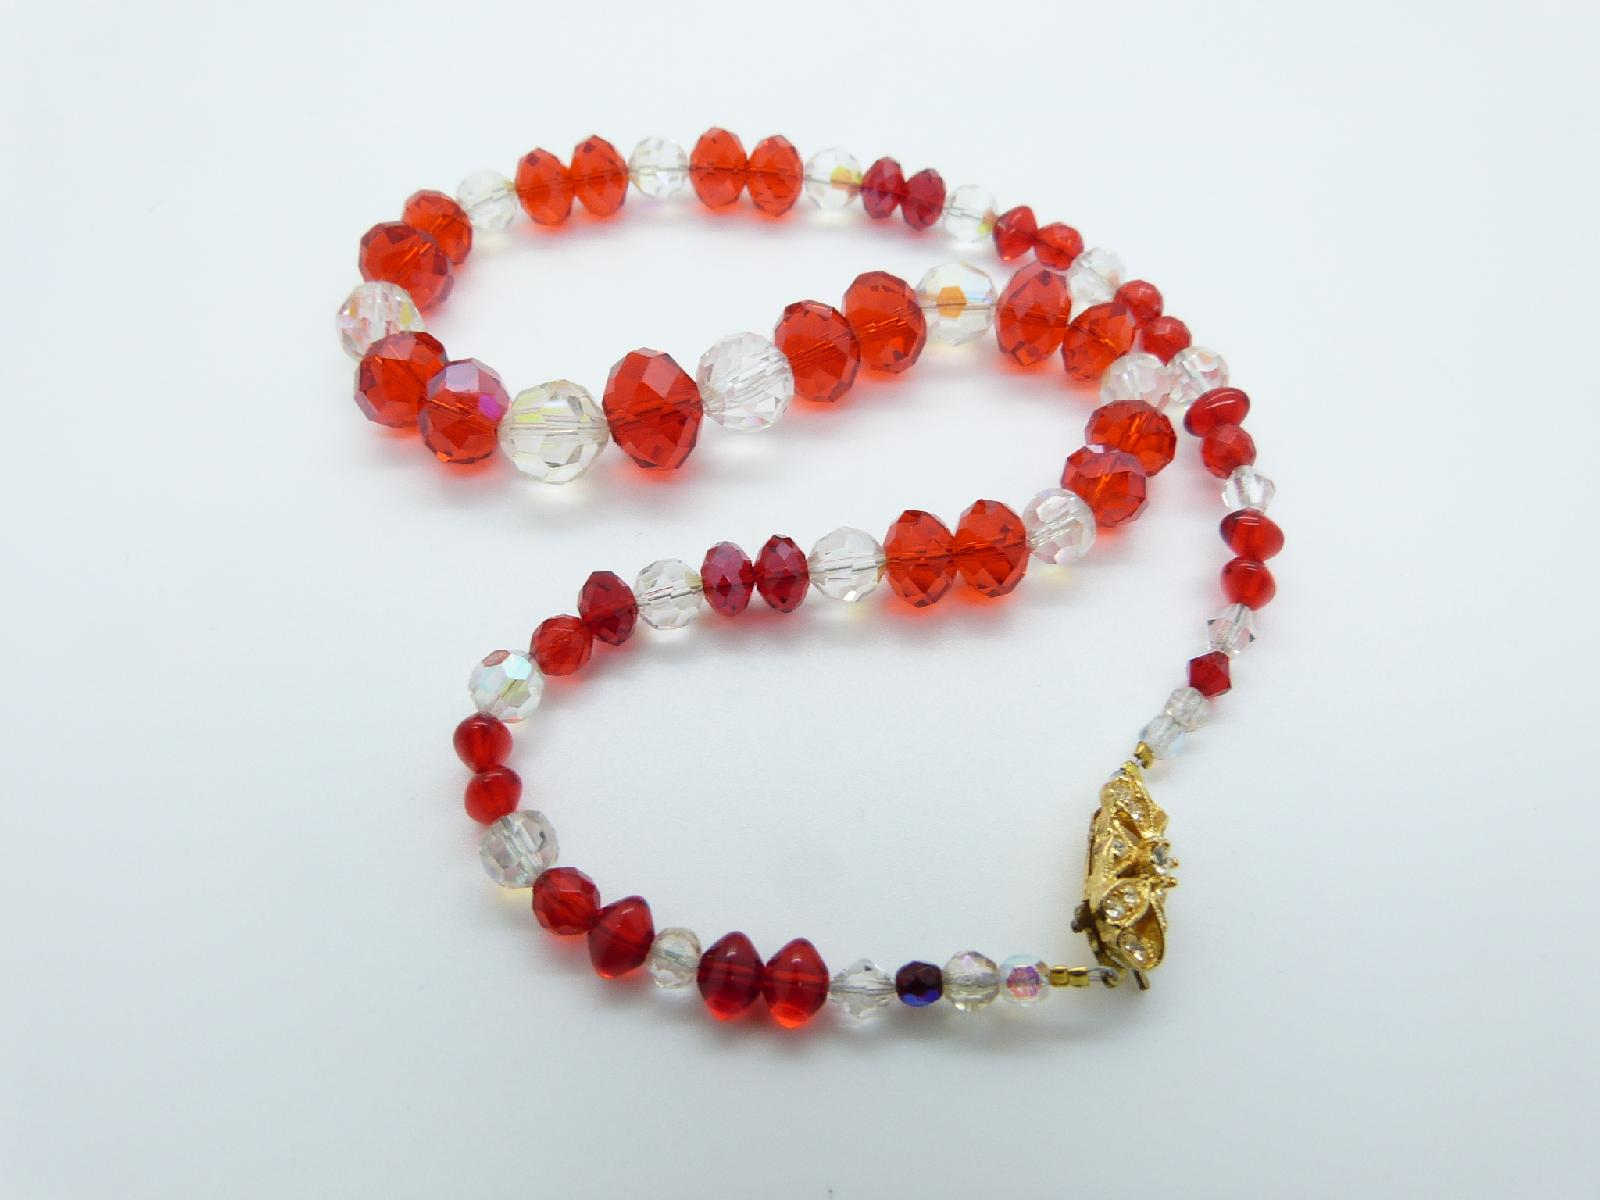 Vintage Redesigned 1950s Red and Clear Crystal Glass Bead Necklace Fancy Clasp 47cms